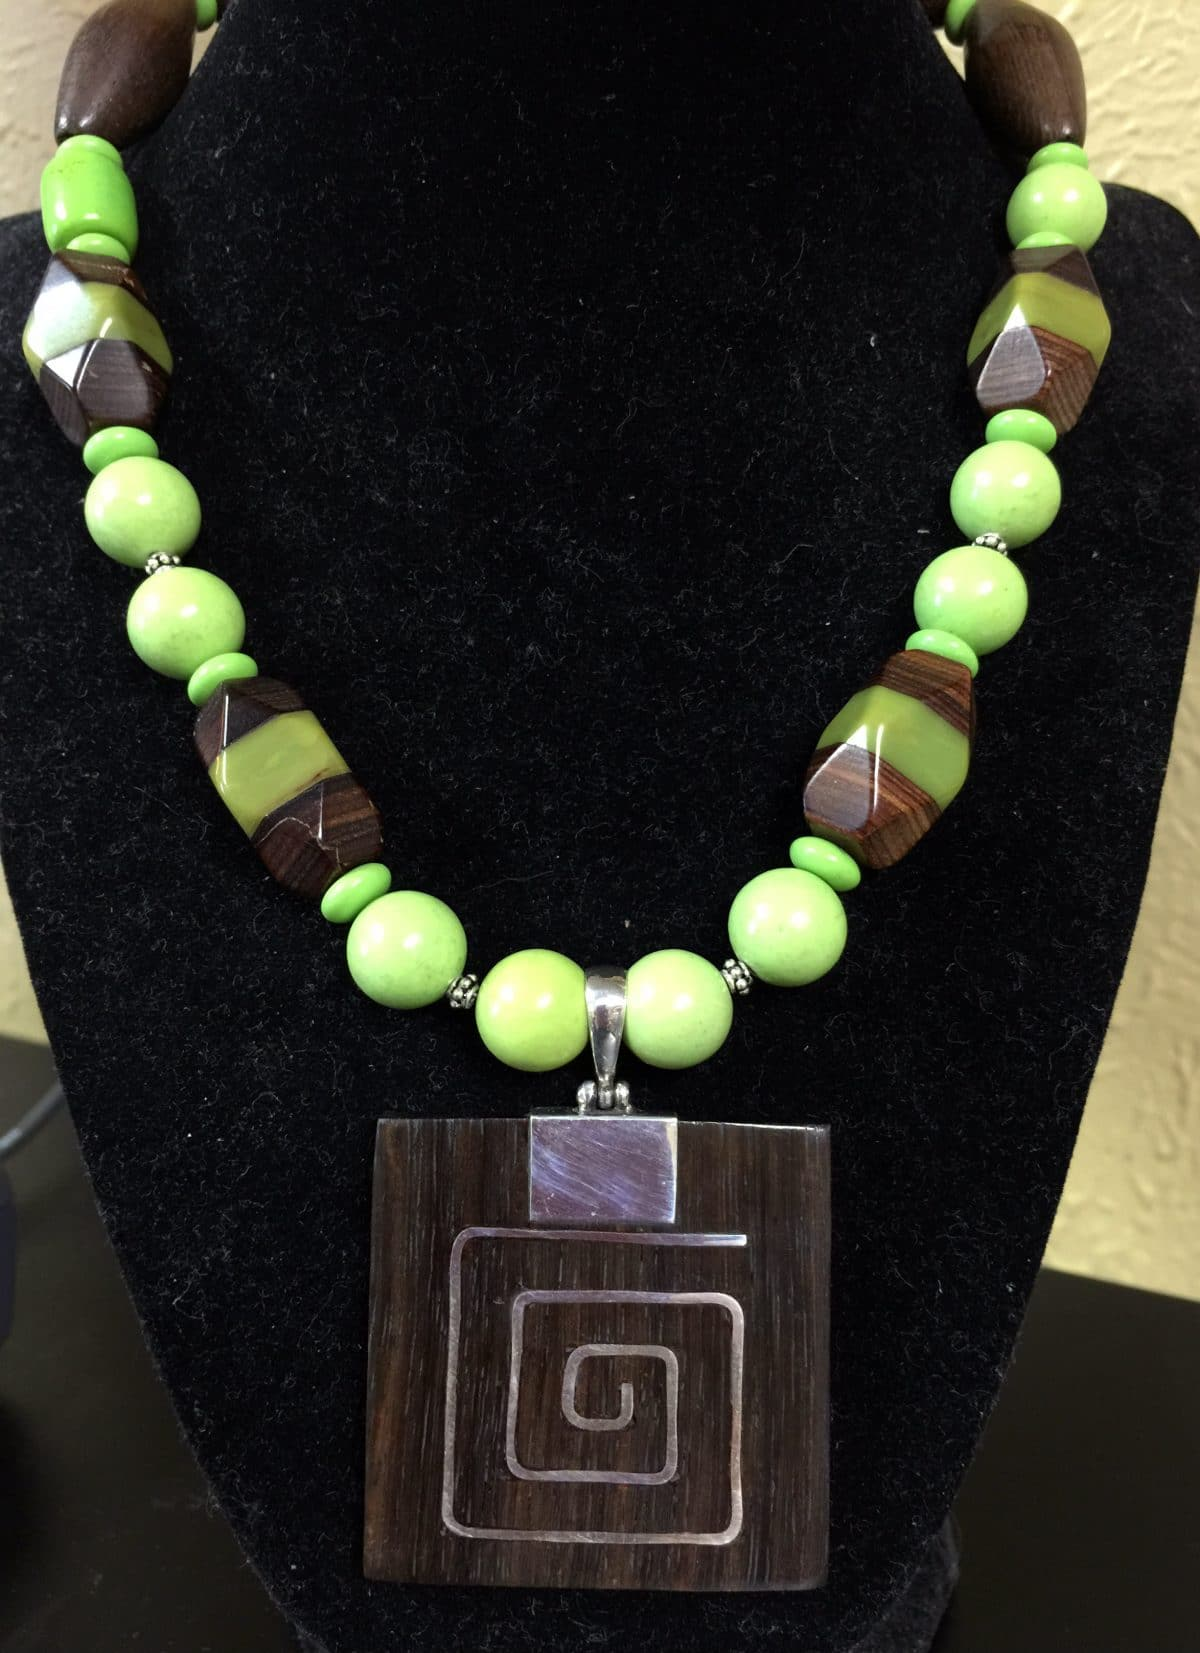 This is a necklace from Mary Ellen Merrigan of Mary Ellen Beads.